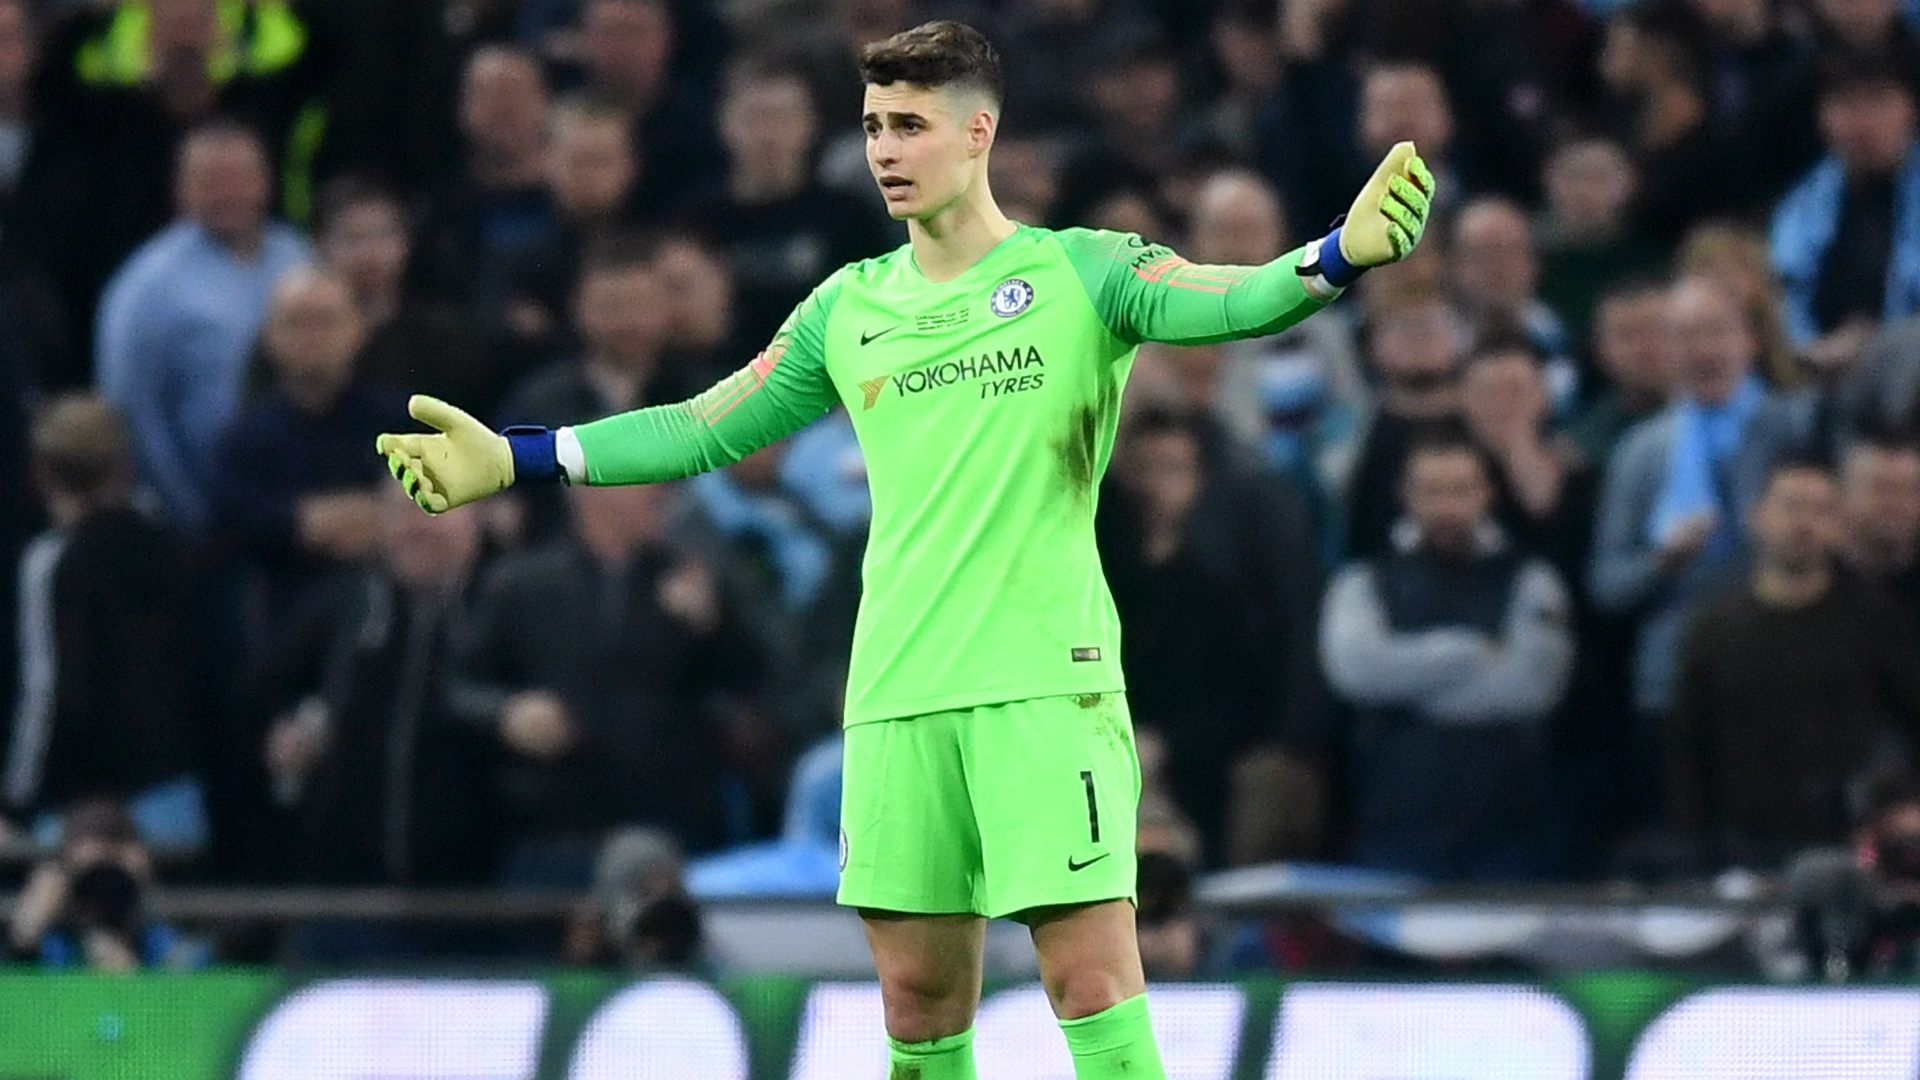 Kepa to start tonight against Krasnodar